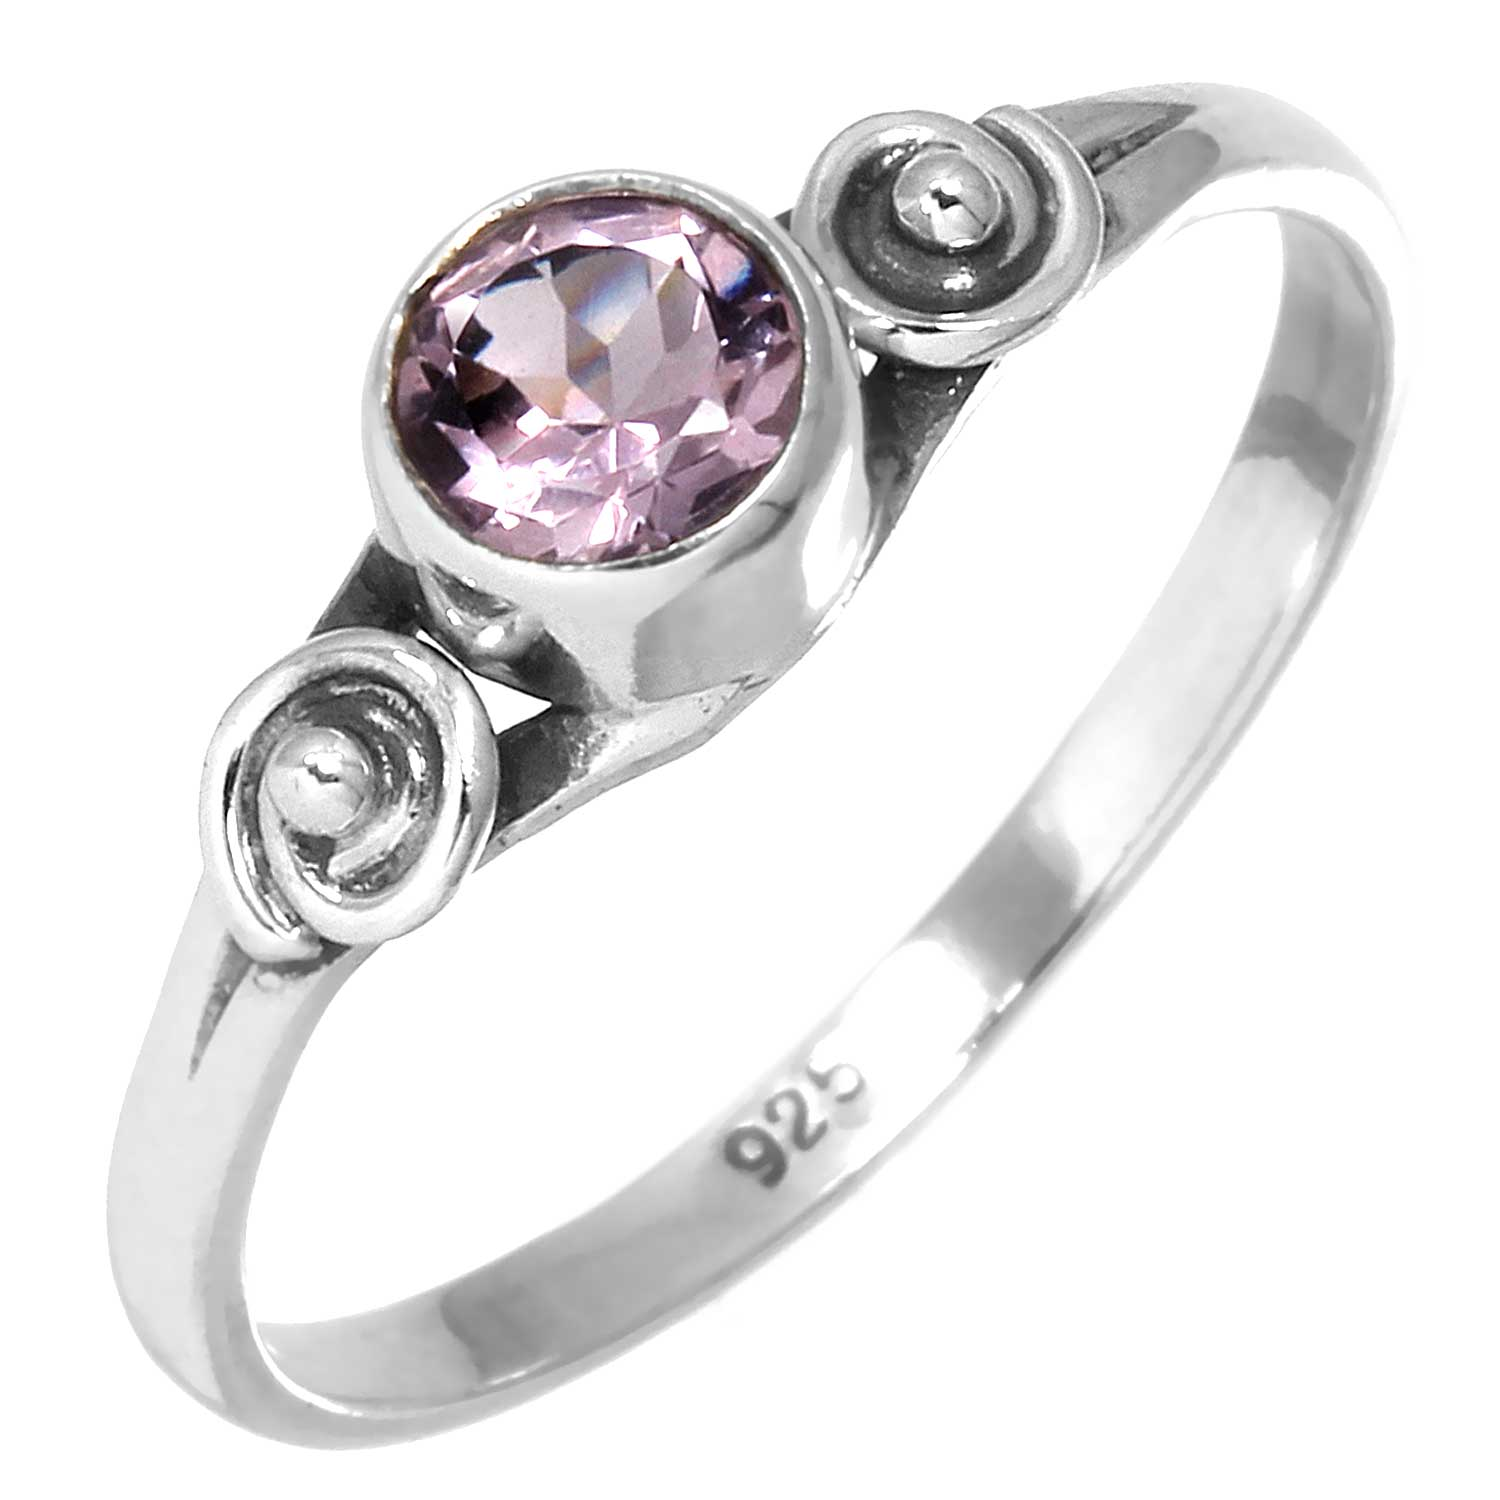 Wholesale Sterling Silver Gemstone Rings (Product ID = rg802amef)